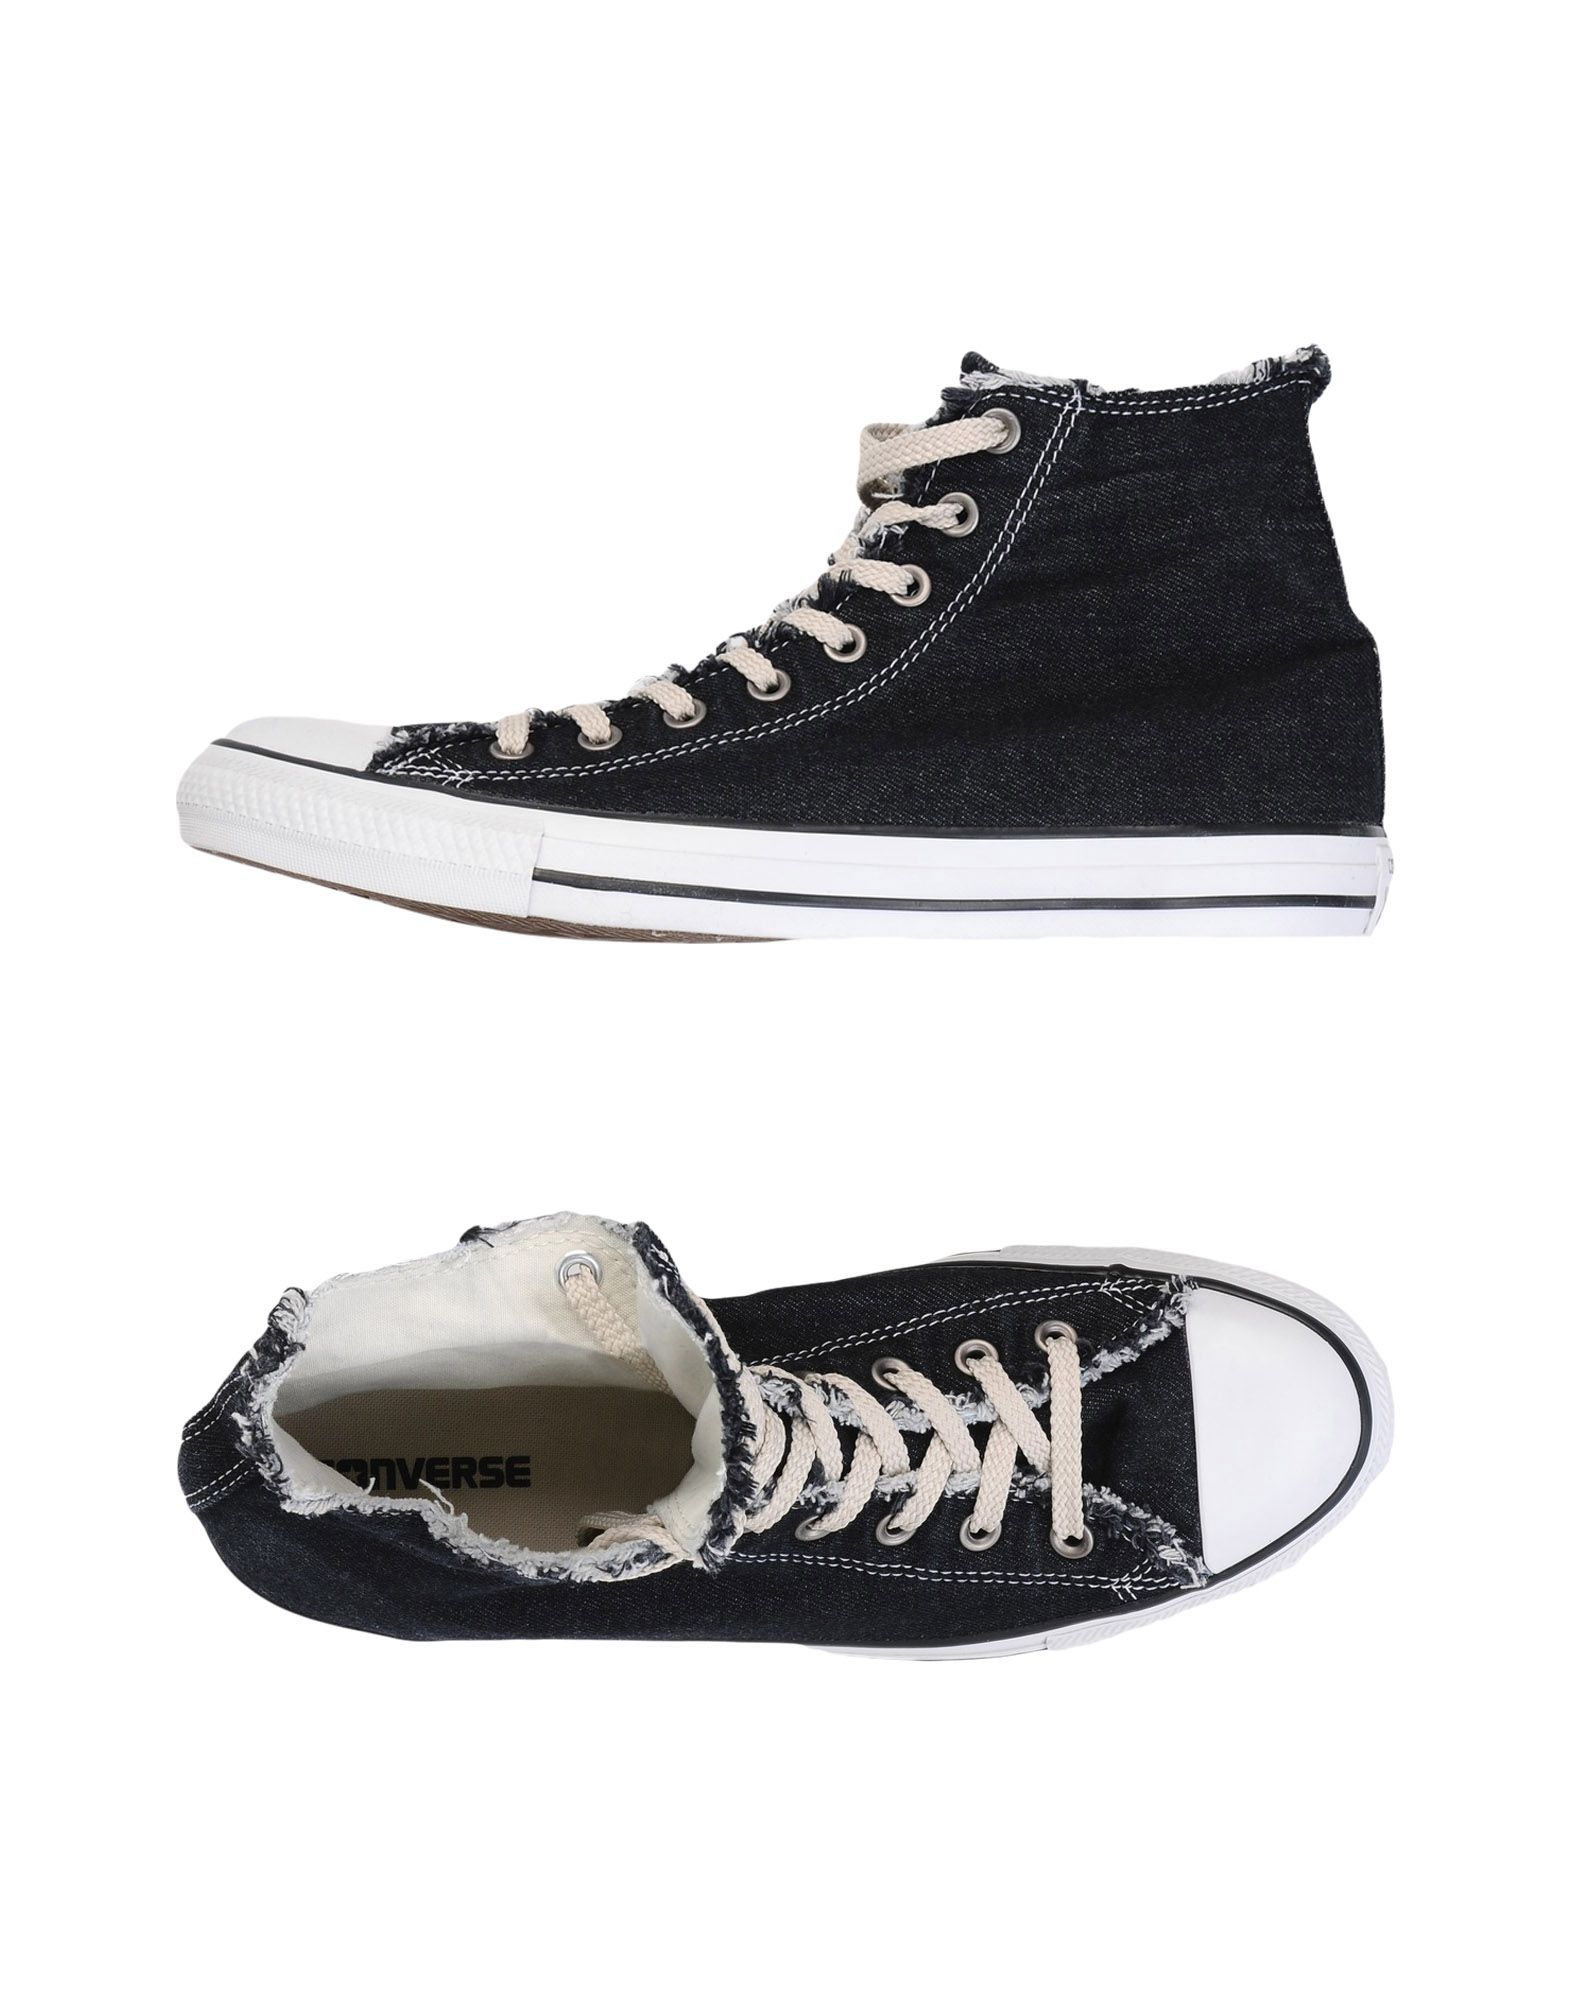 Sneakers Converse All Star Ctas Hi Denim Frayed Washed - Uomo - 11461375WT